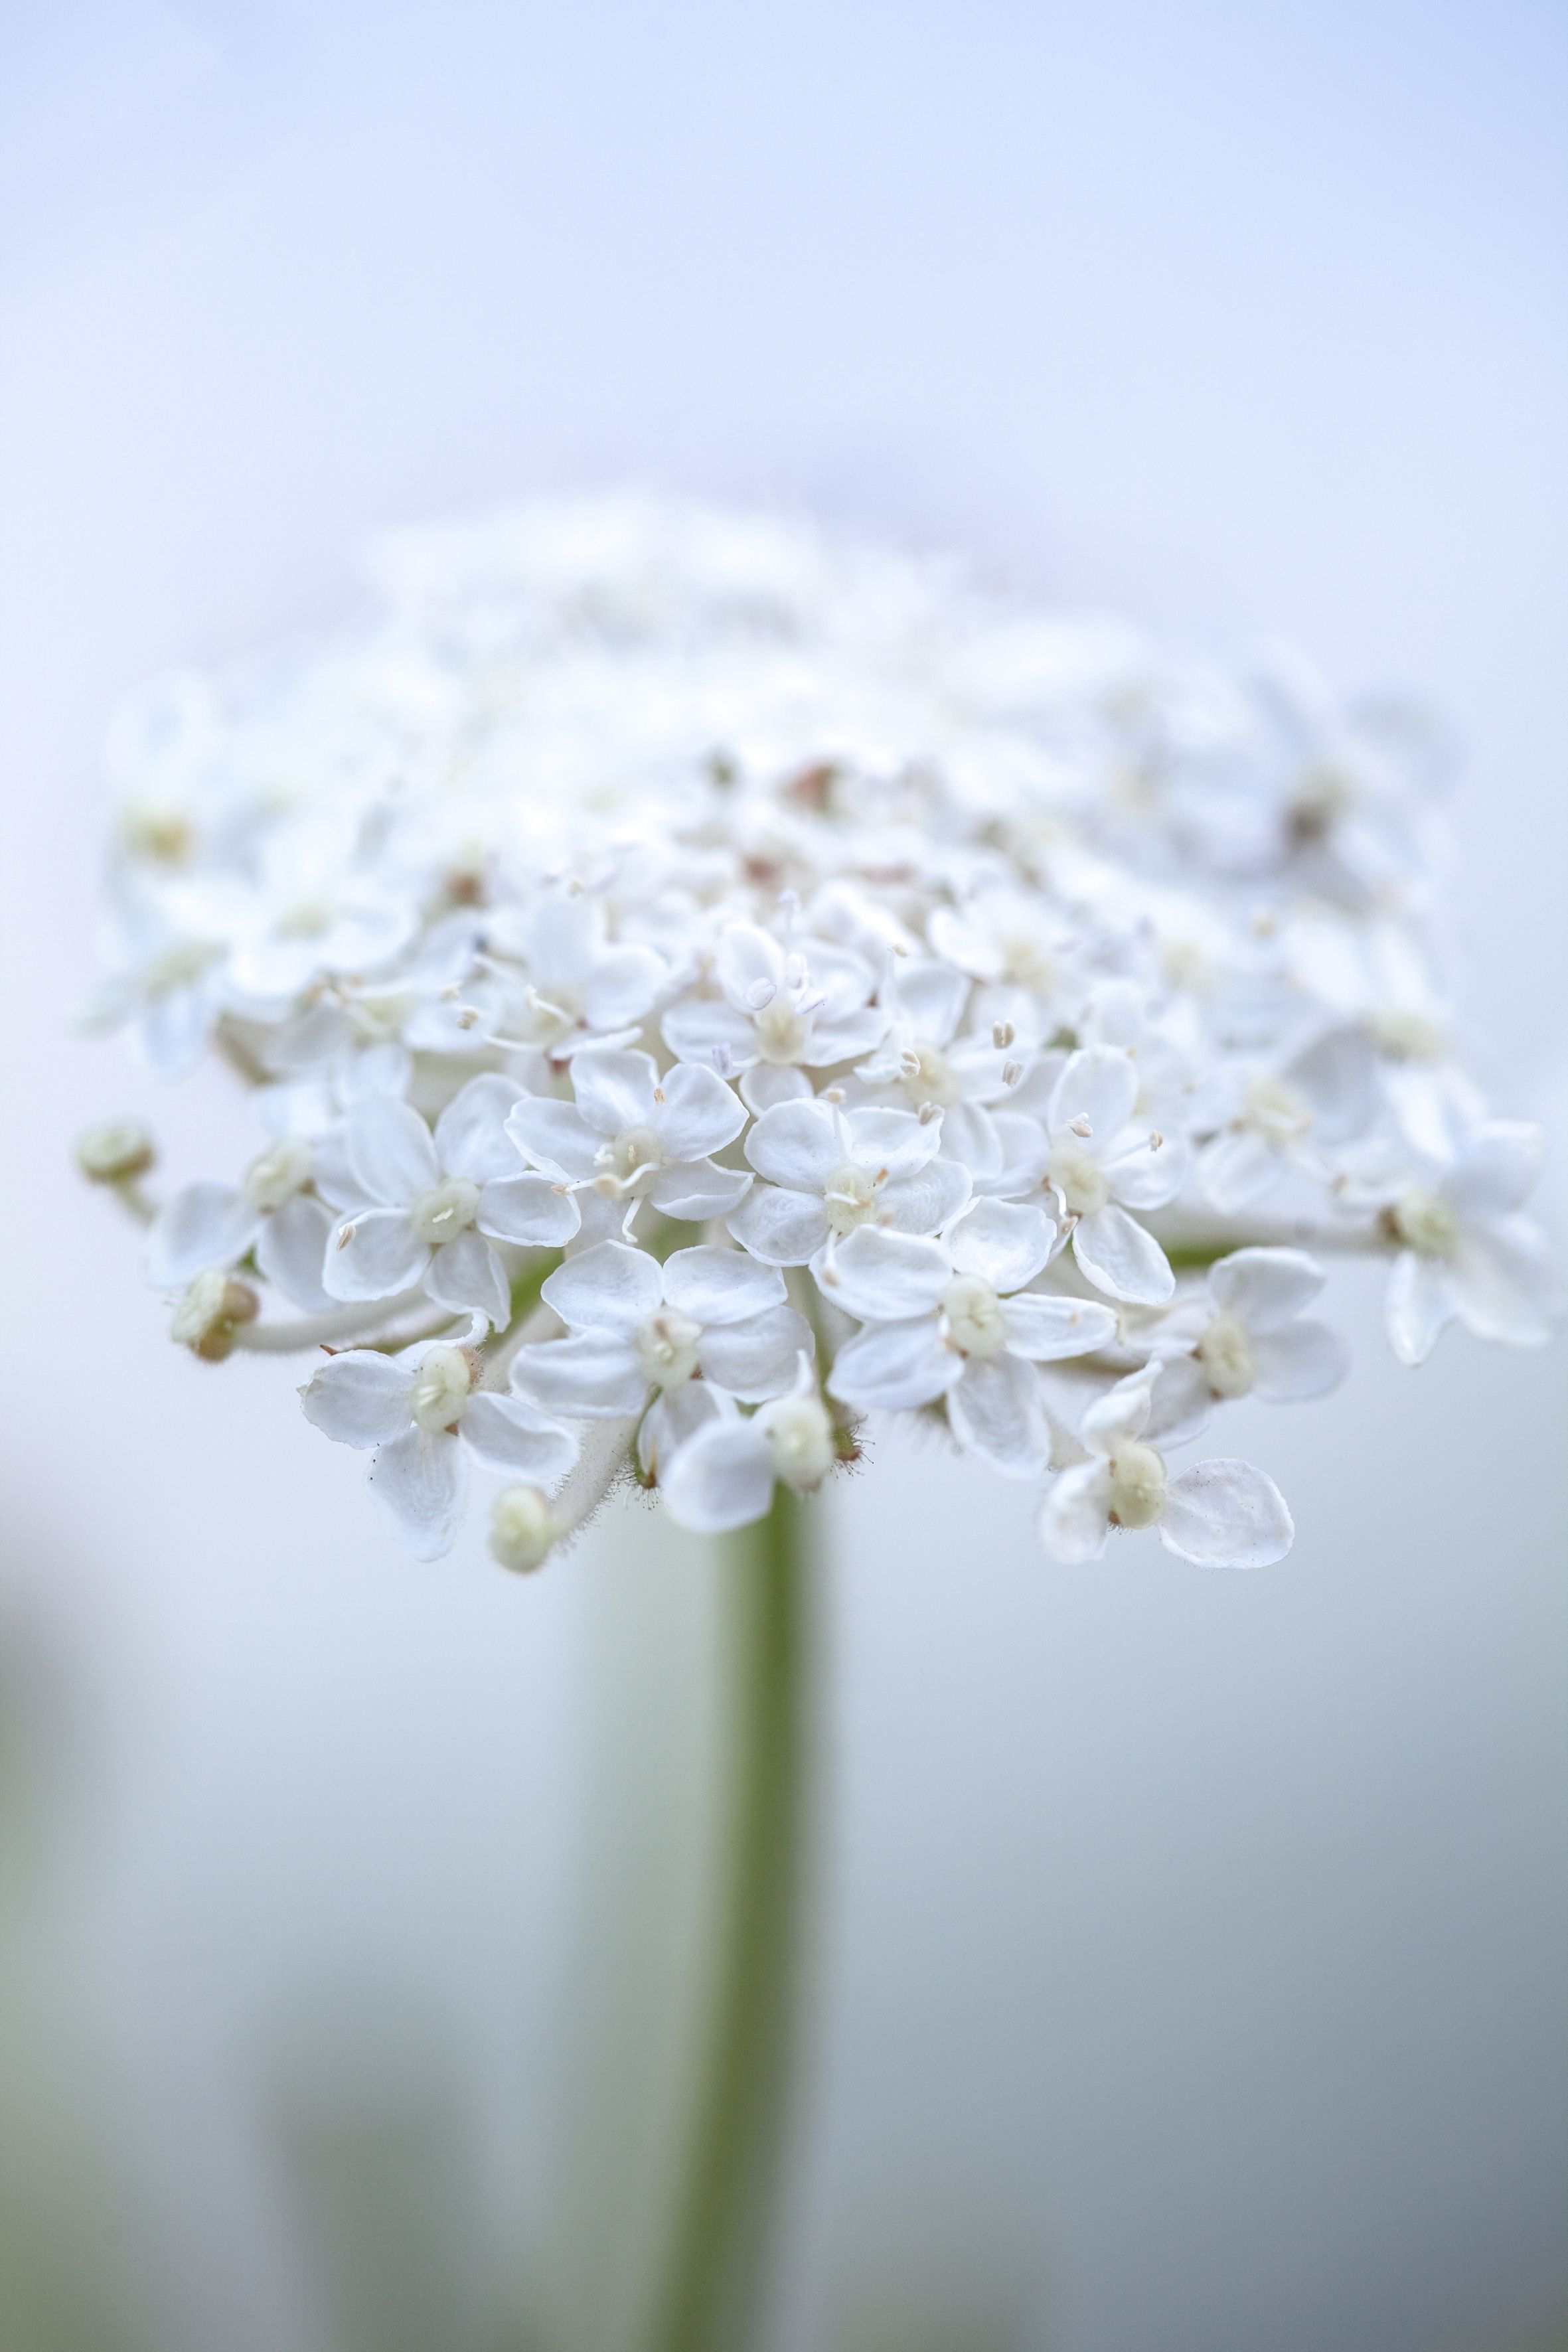 Didiscus Caeruleus Lacy White Beautiful White Flowered Variety Of The Blue Lace Flower Large Lacy Umbels Of White F Bees Plants Summer Flowers Flower Seeds